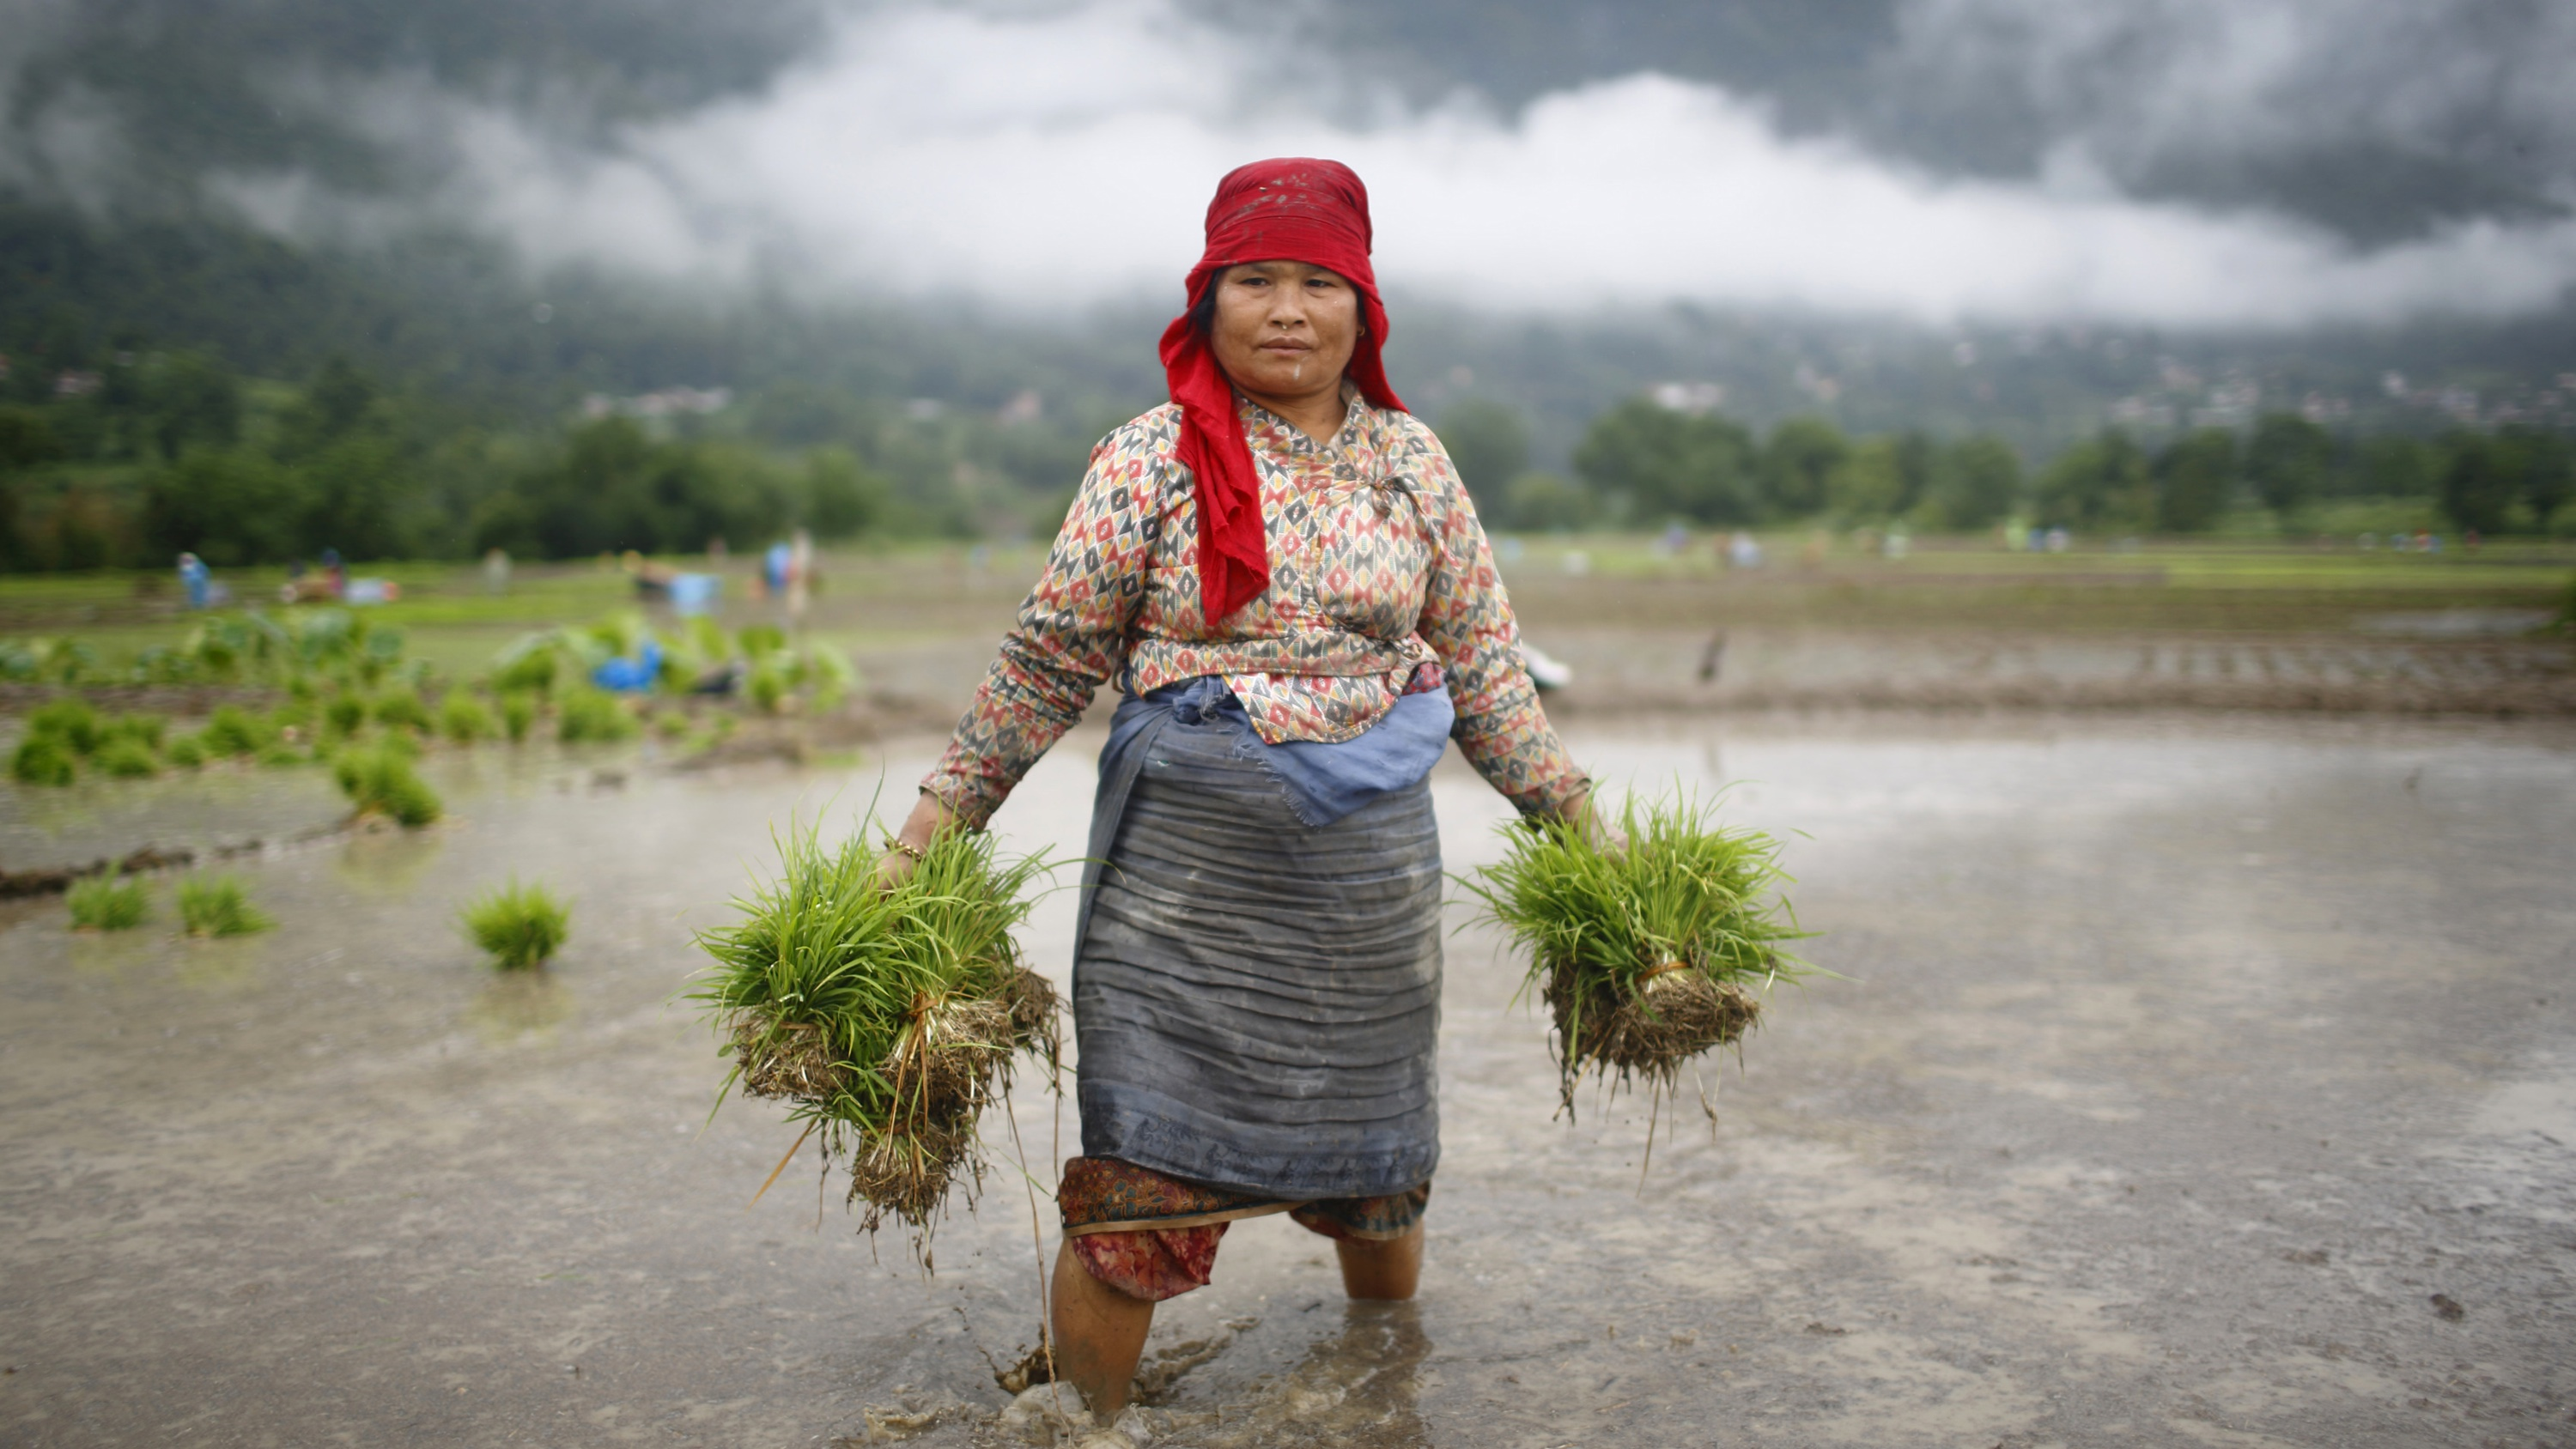 Female subsistence farmers in the developing world will bear the most severe impacts of climate change.